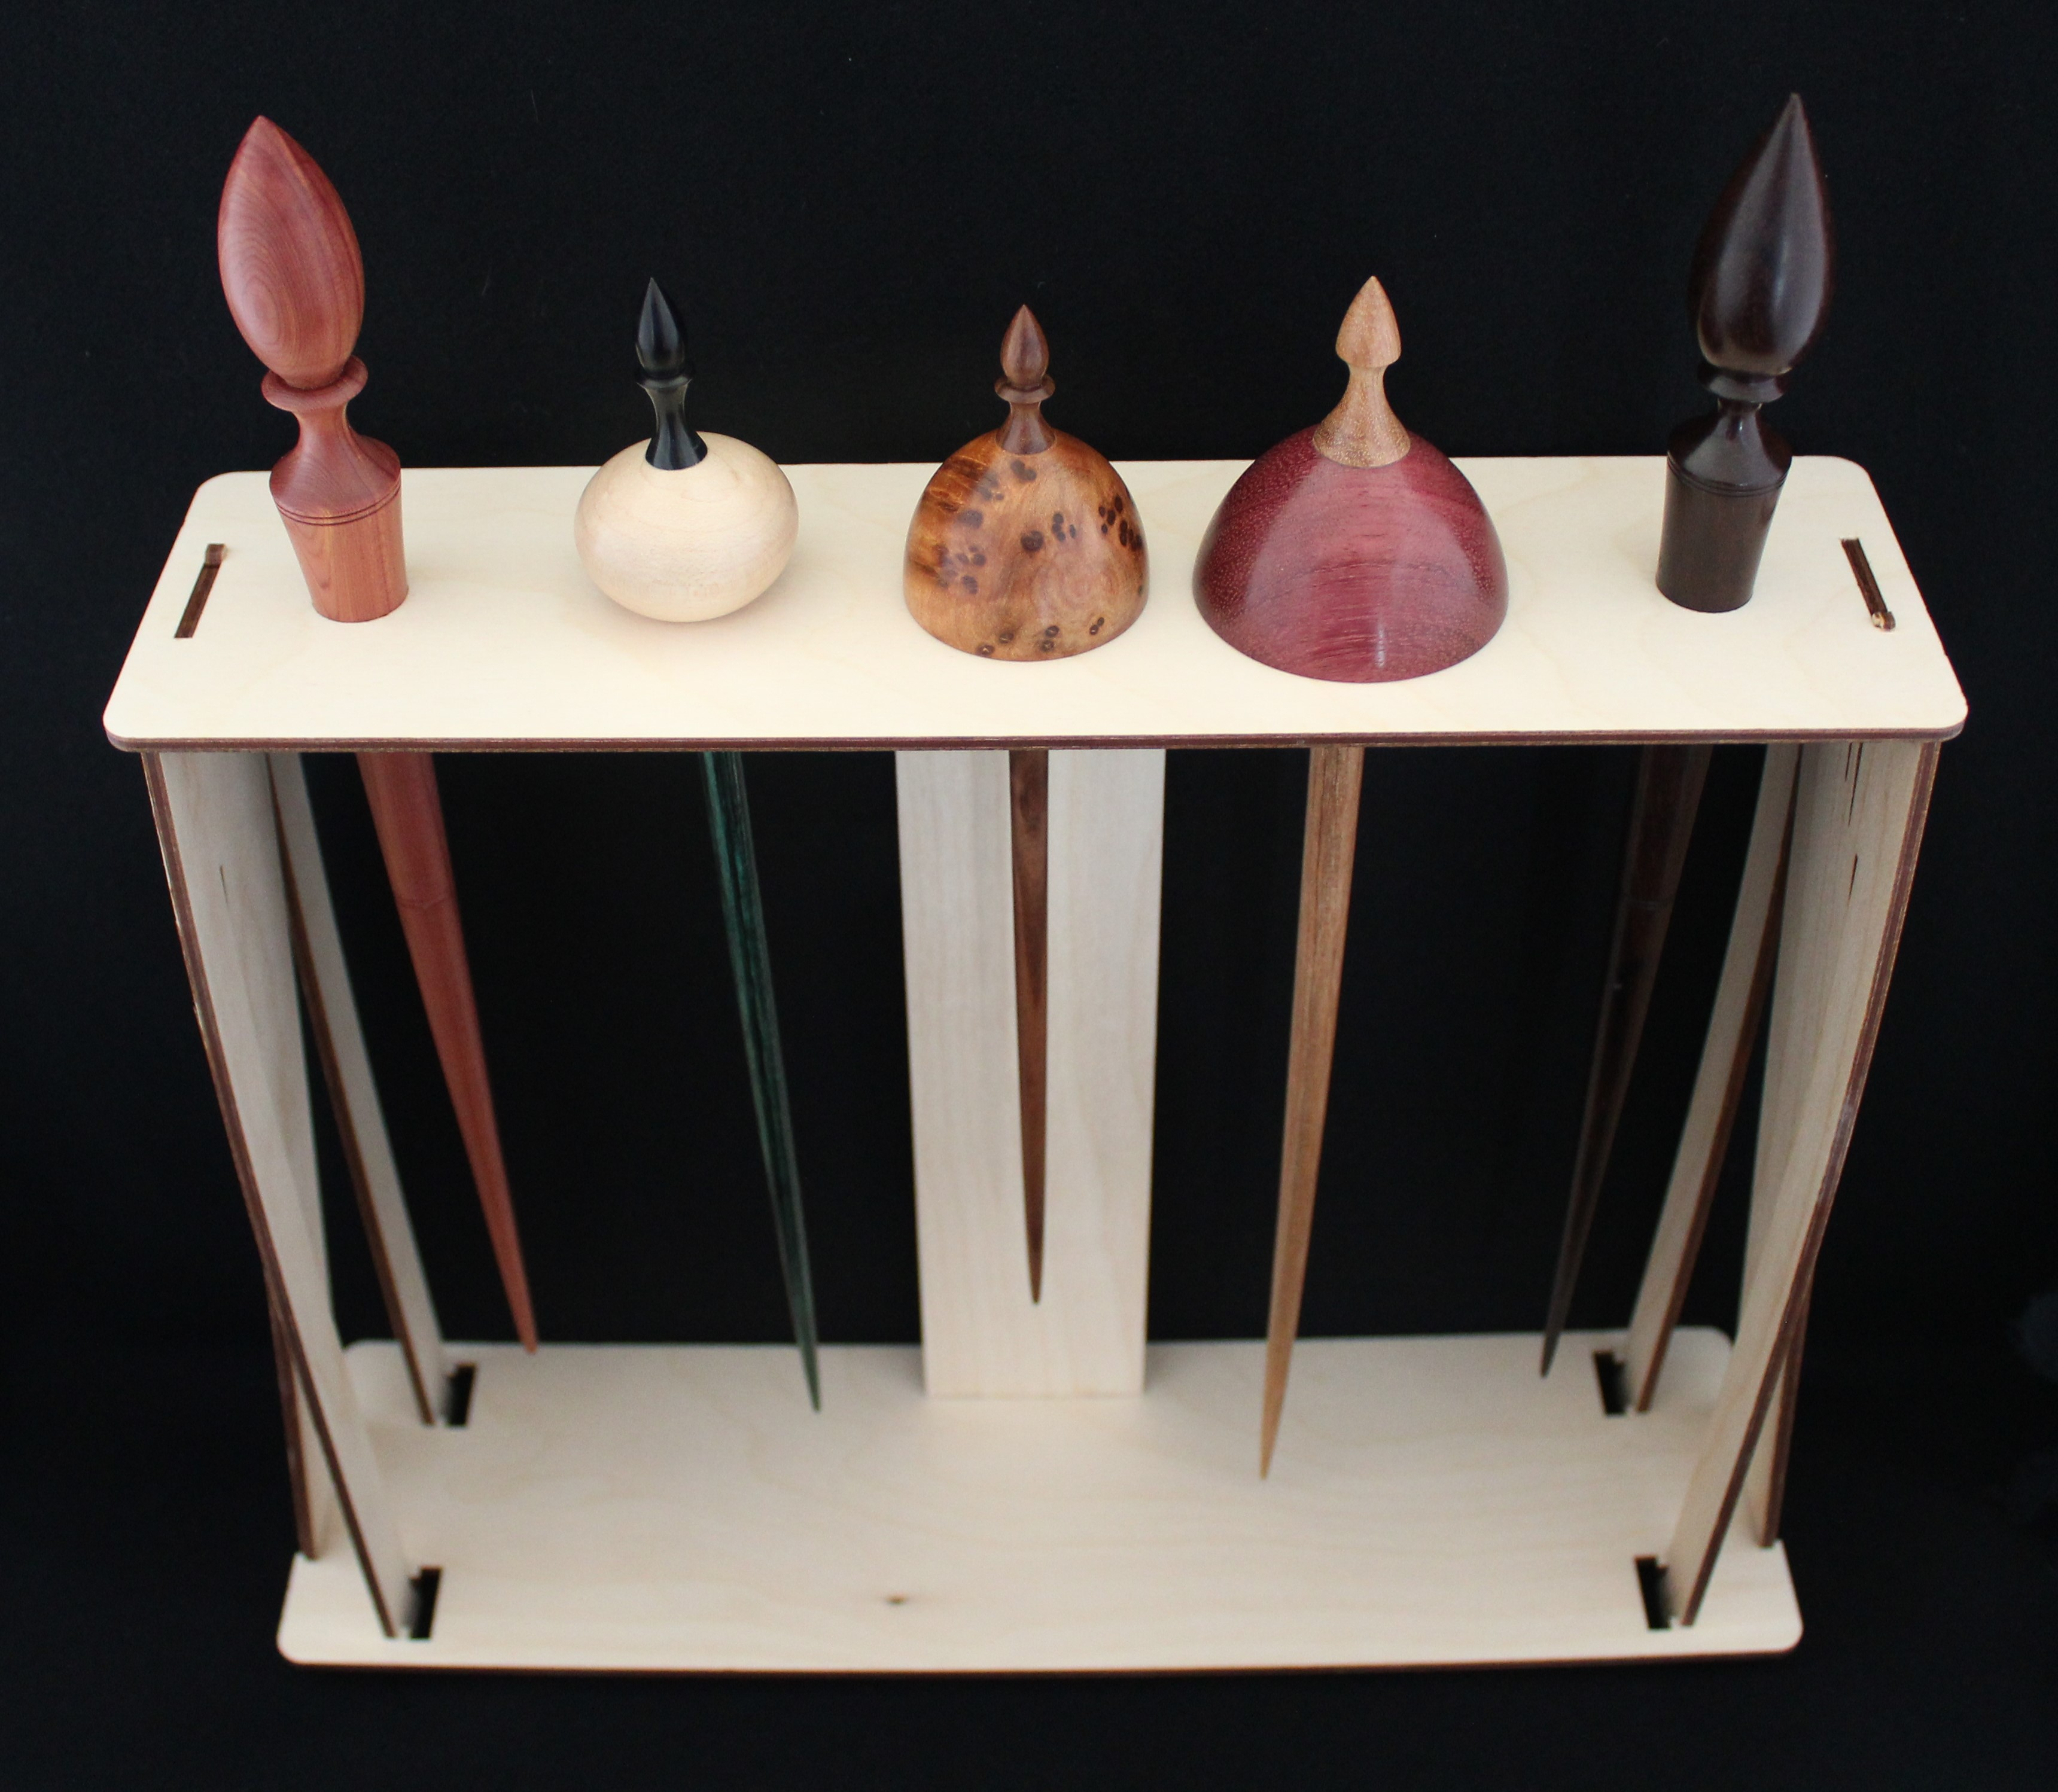 A Spanish Peacock Spindle Storage Stand can hold up to five narrow spindles